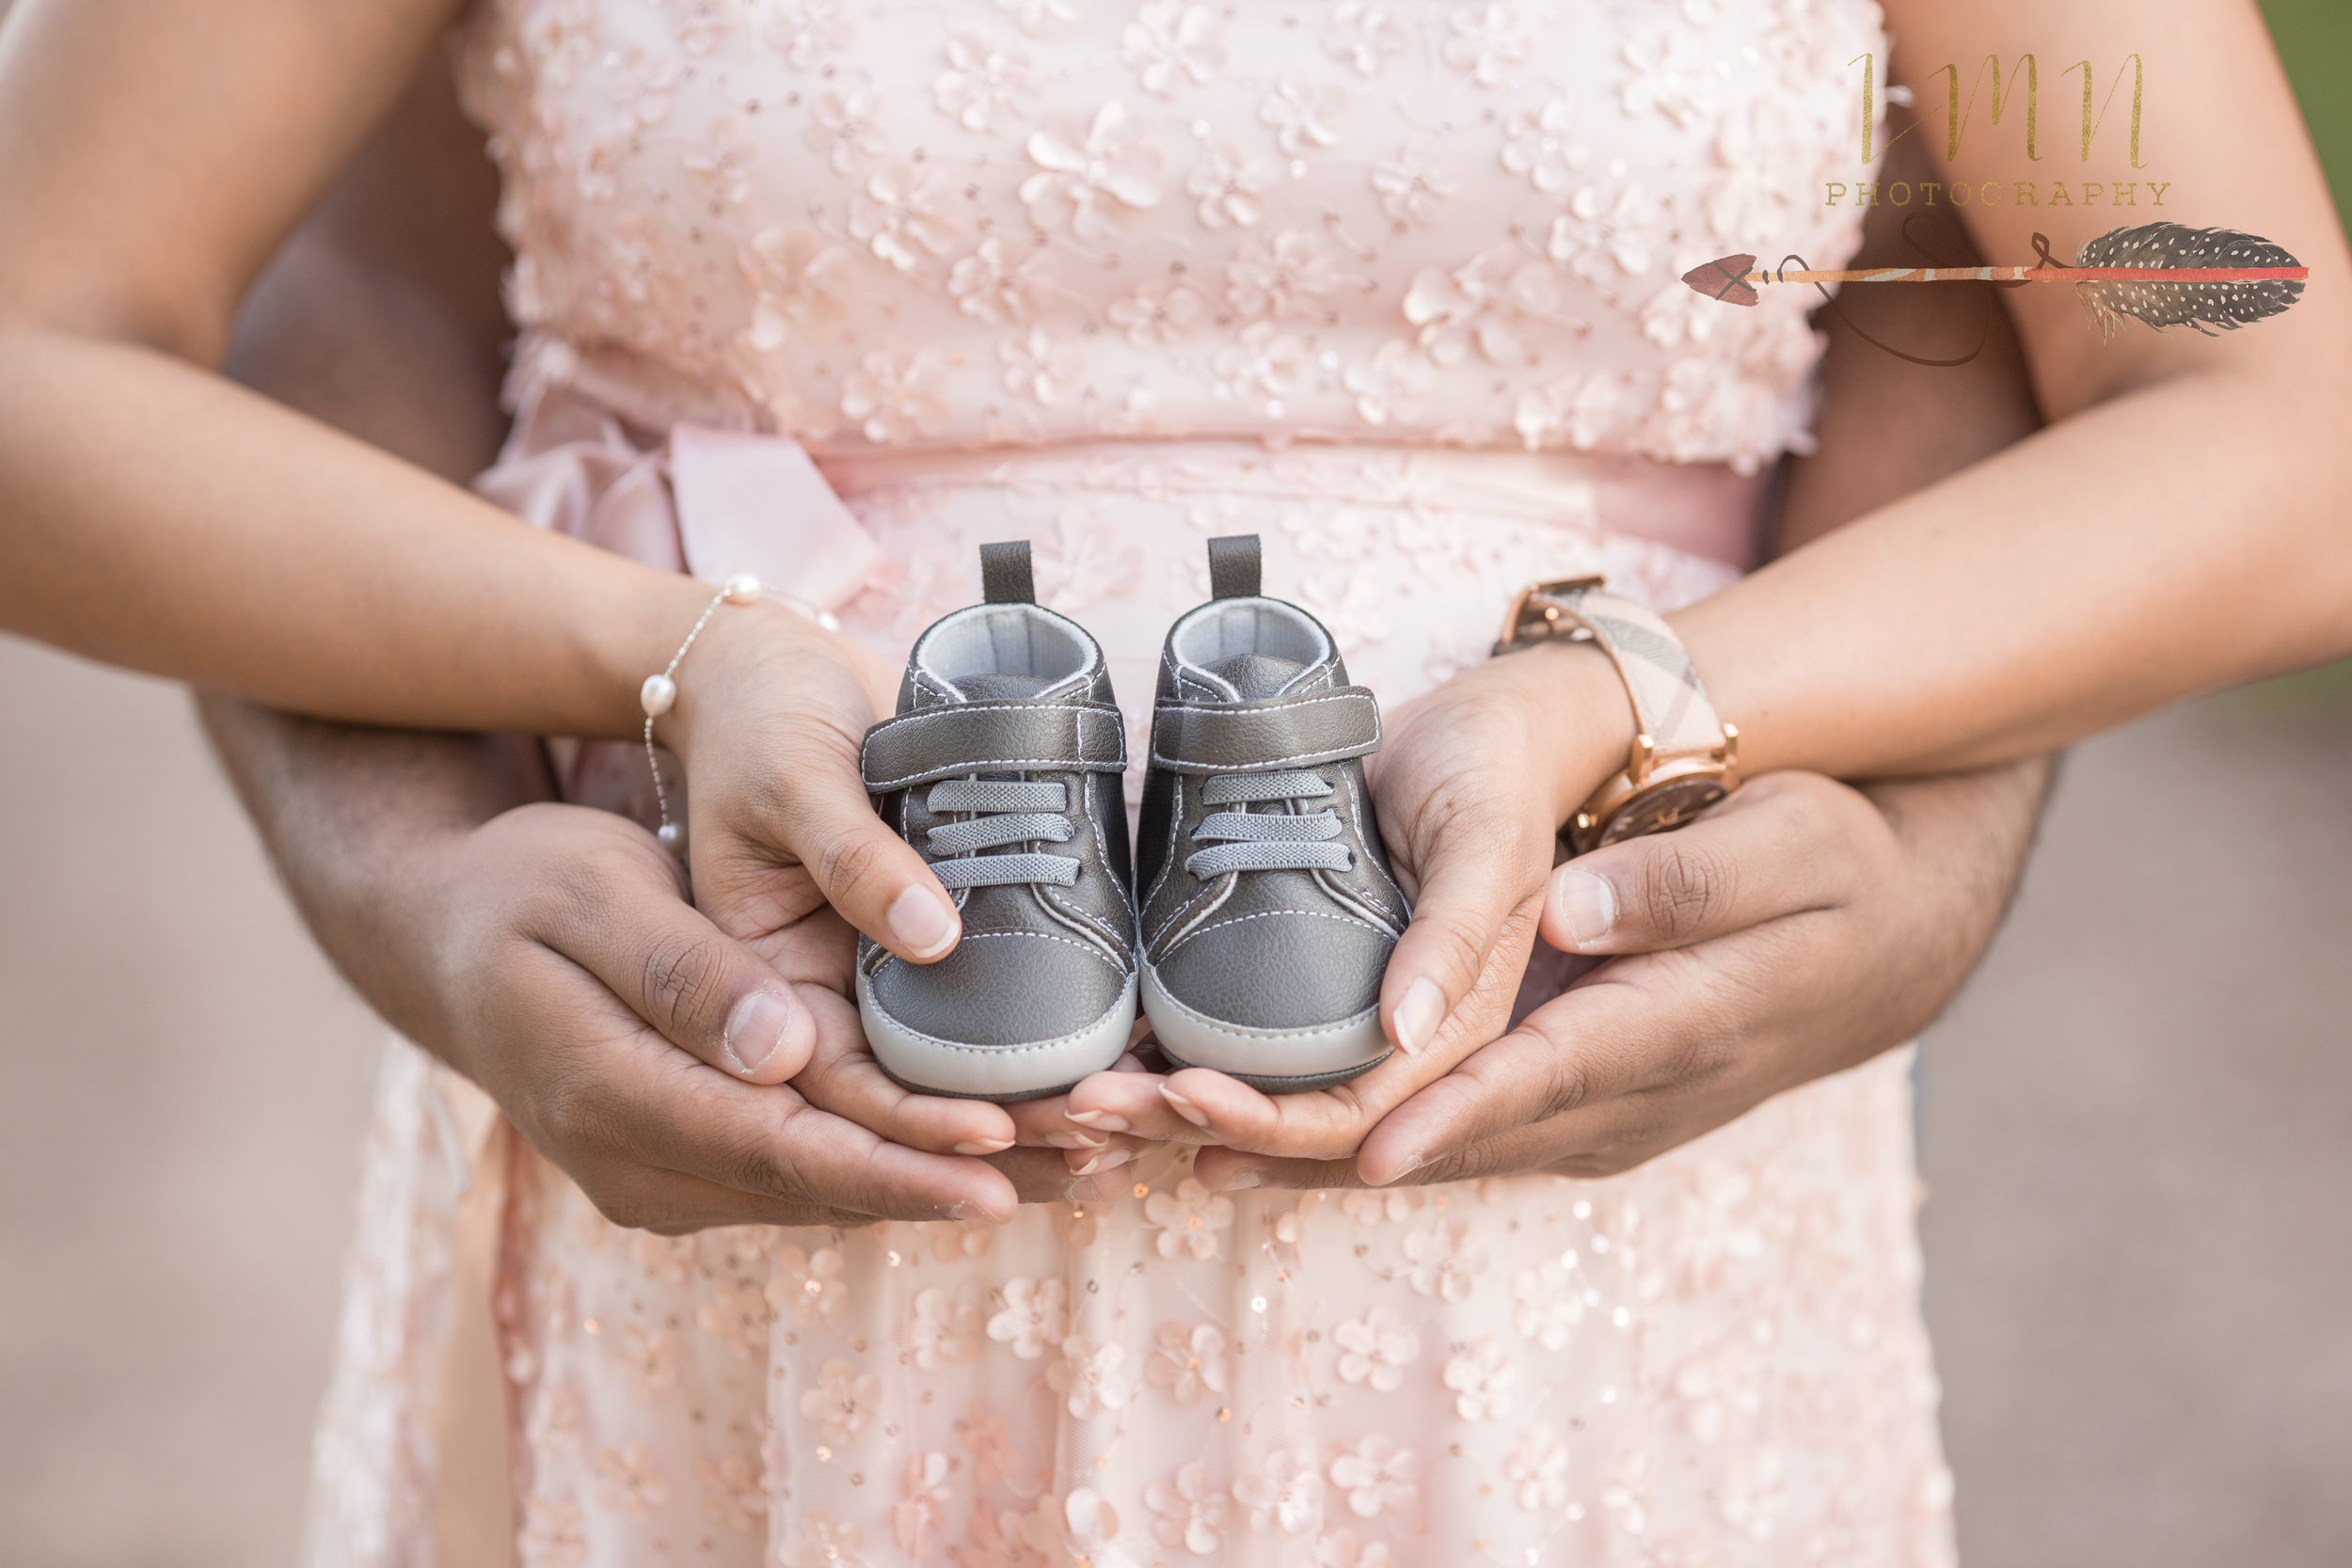 Cypress Maternity Photography 77433 77429